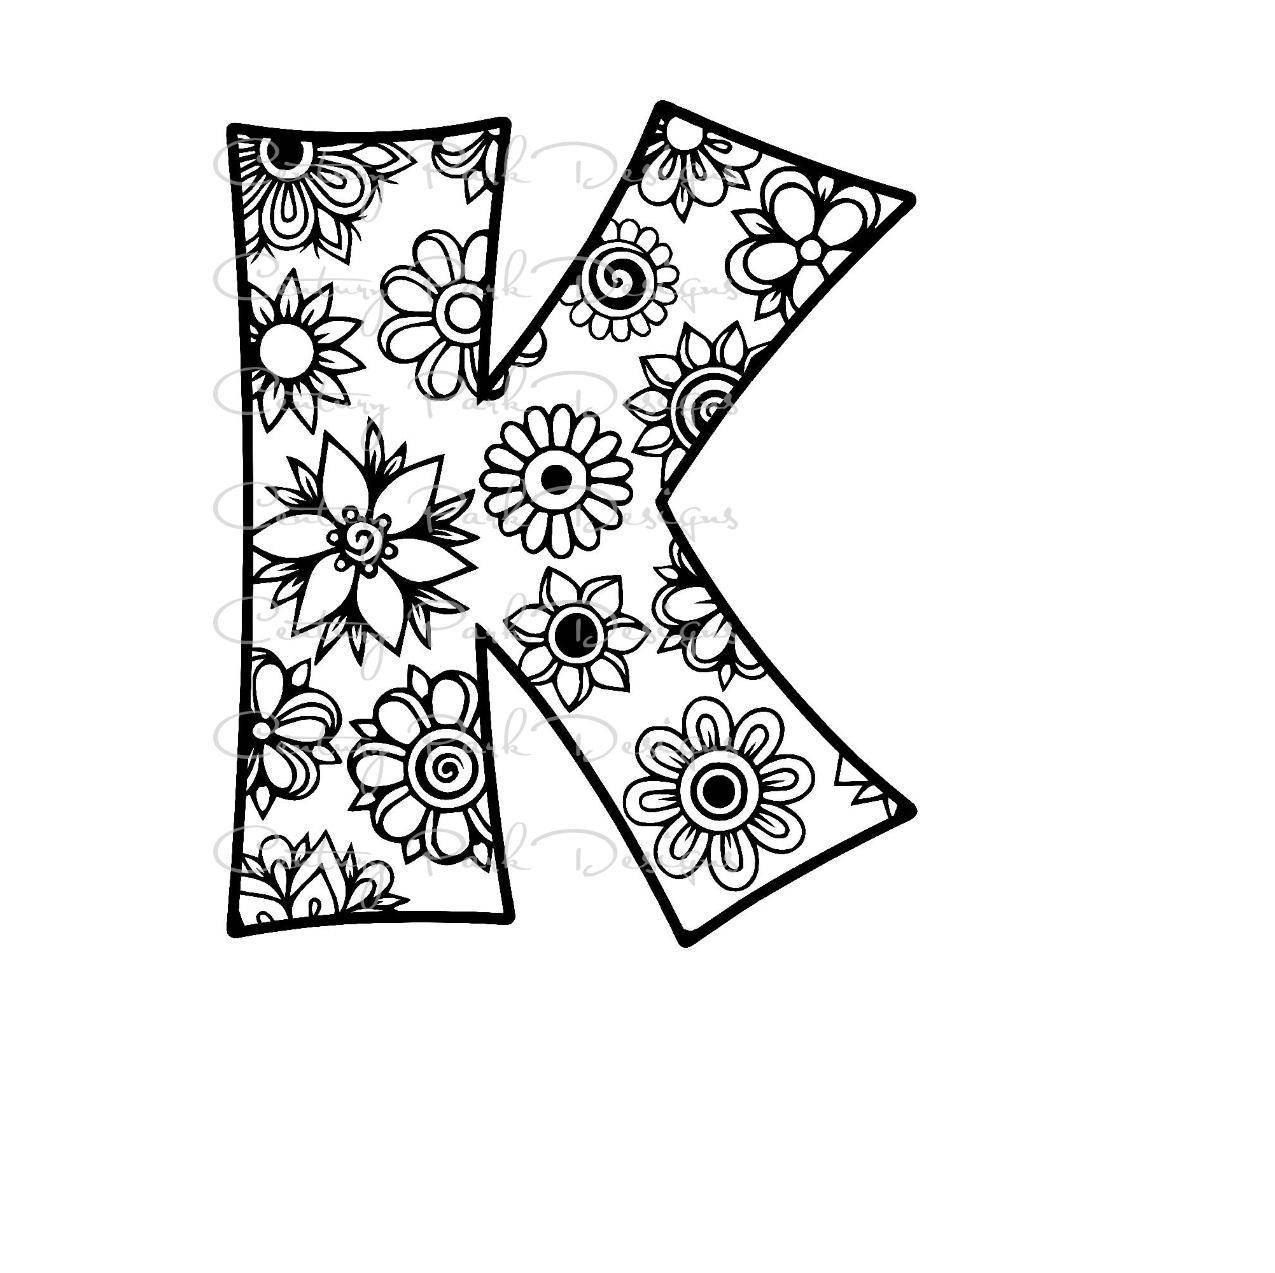 letter k coloring pages for adults letter k coloring pages for adults free printable for k coloring adults pages letter